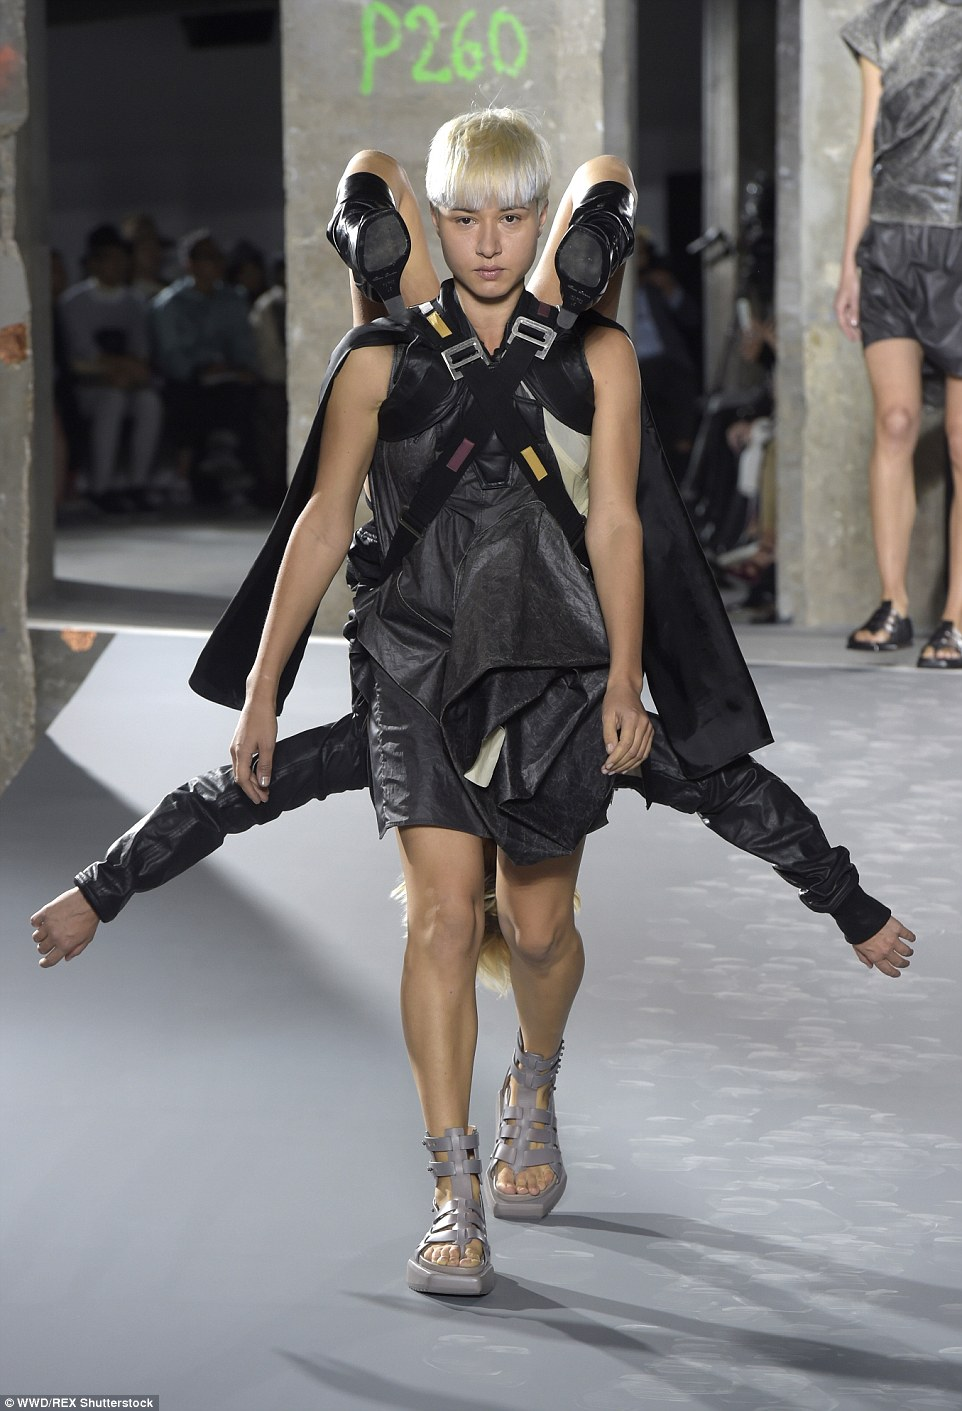 In a statement released after the presentation, Rick Owens explained that the collection was called Cyclops